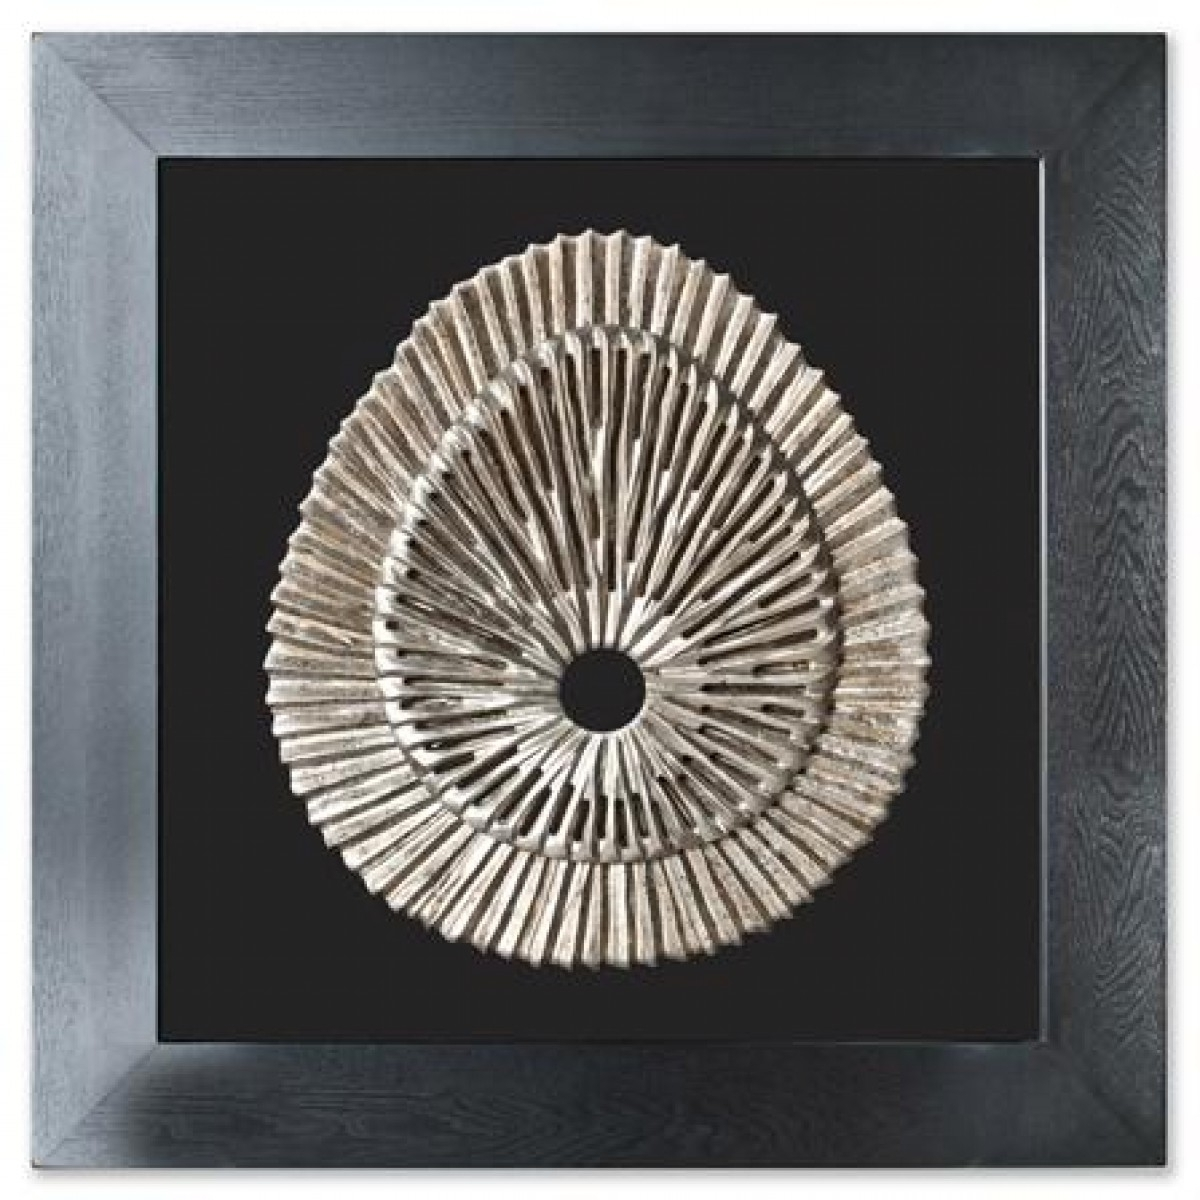 Silver And Gold Wall Art Regarding Newest Wall Art Designs: Bronze Wall Art Roost Pear Shaped Black Gold (View 10 of 15)